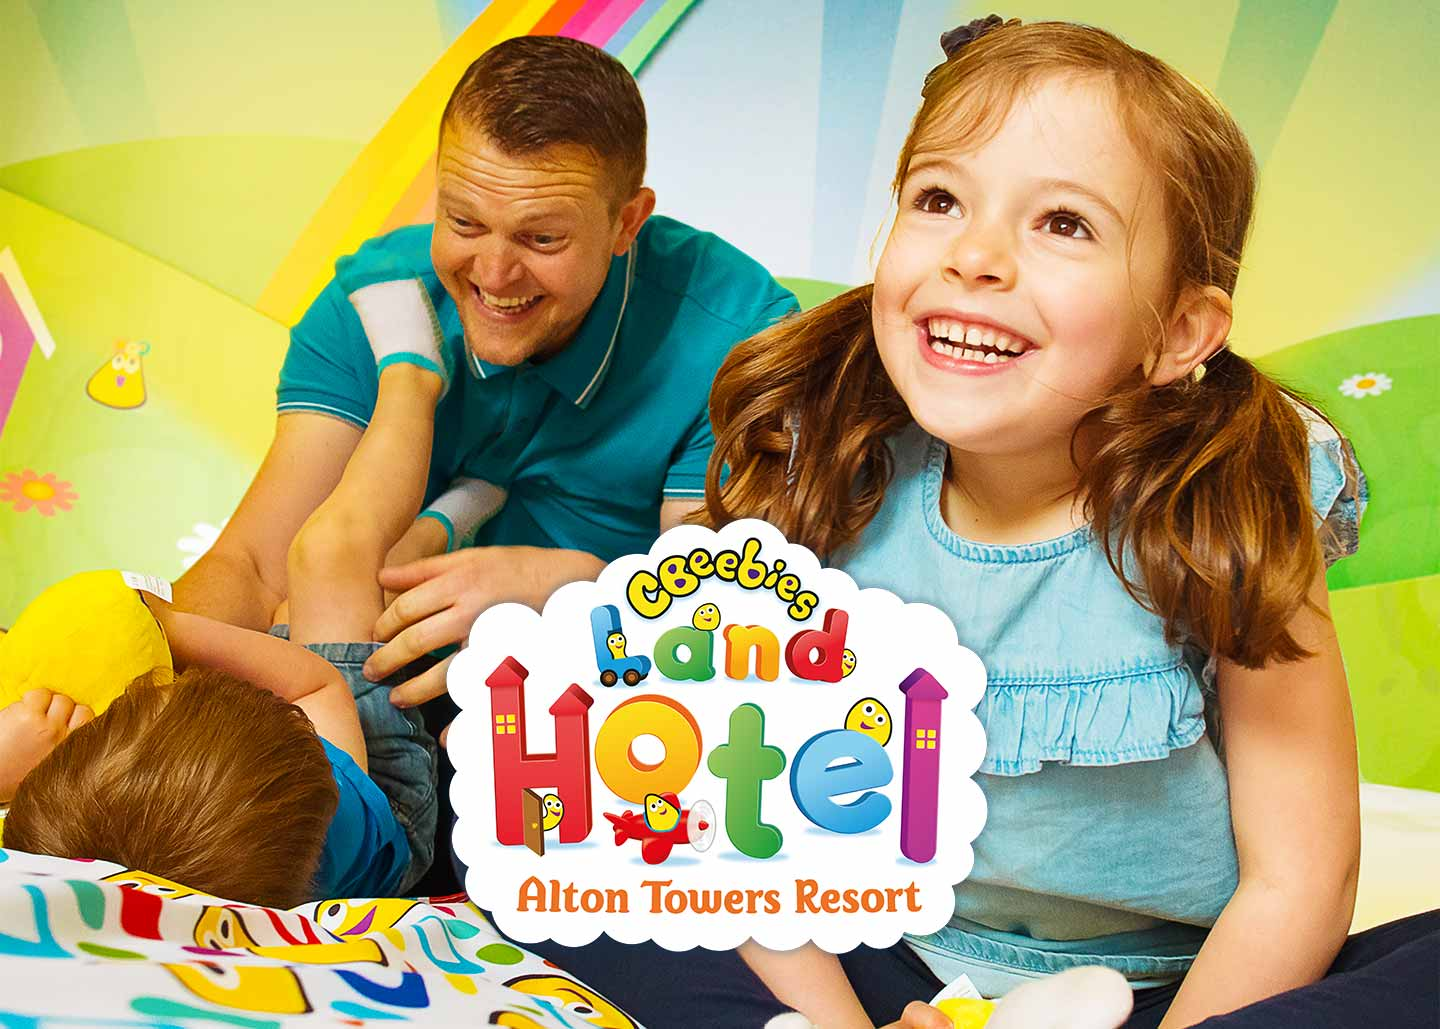 CBeebies Land Hotel at Alton Towers Resort